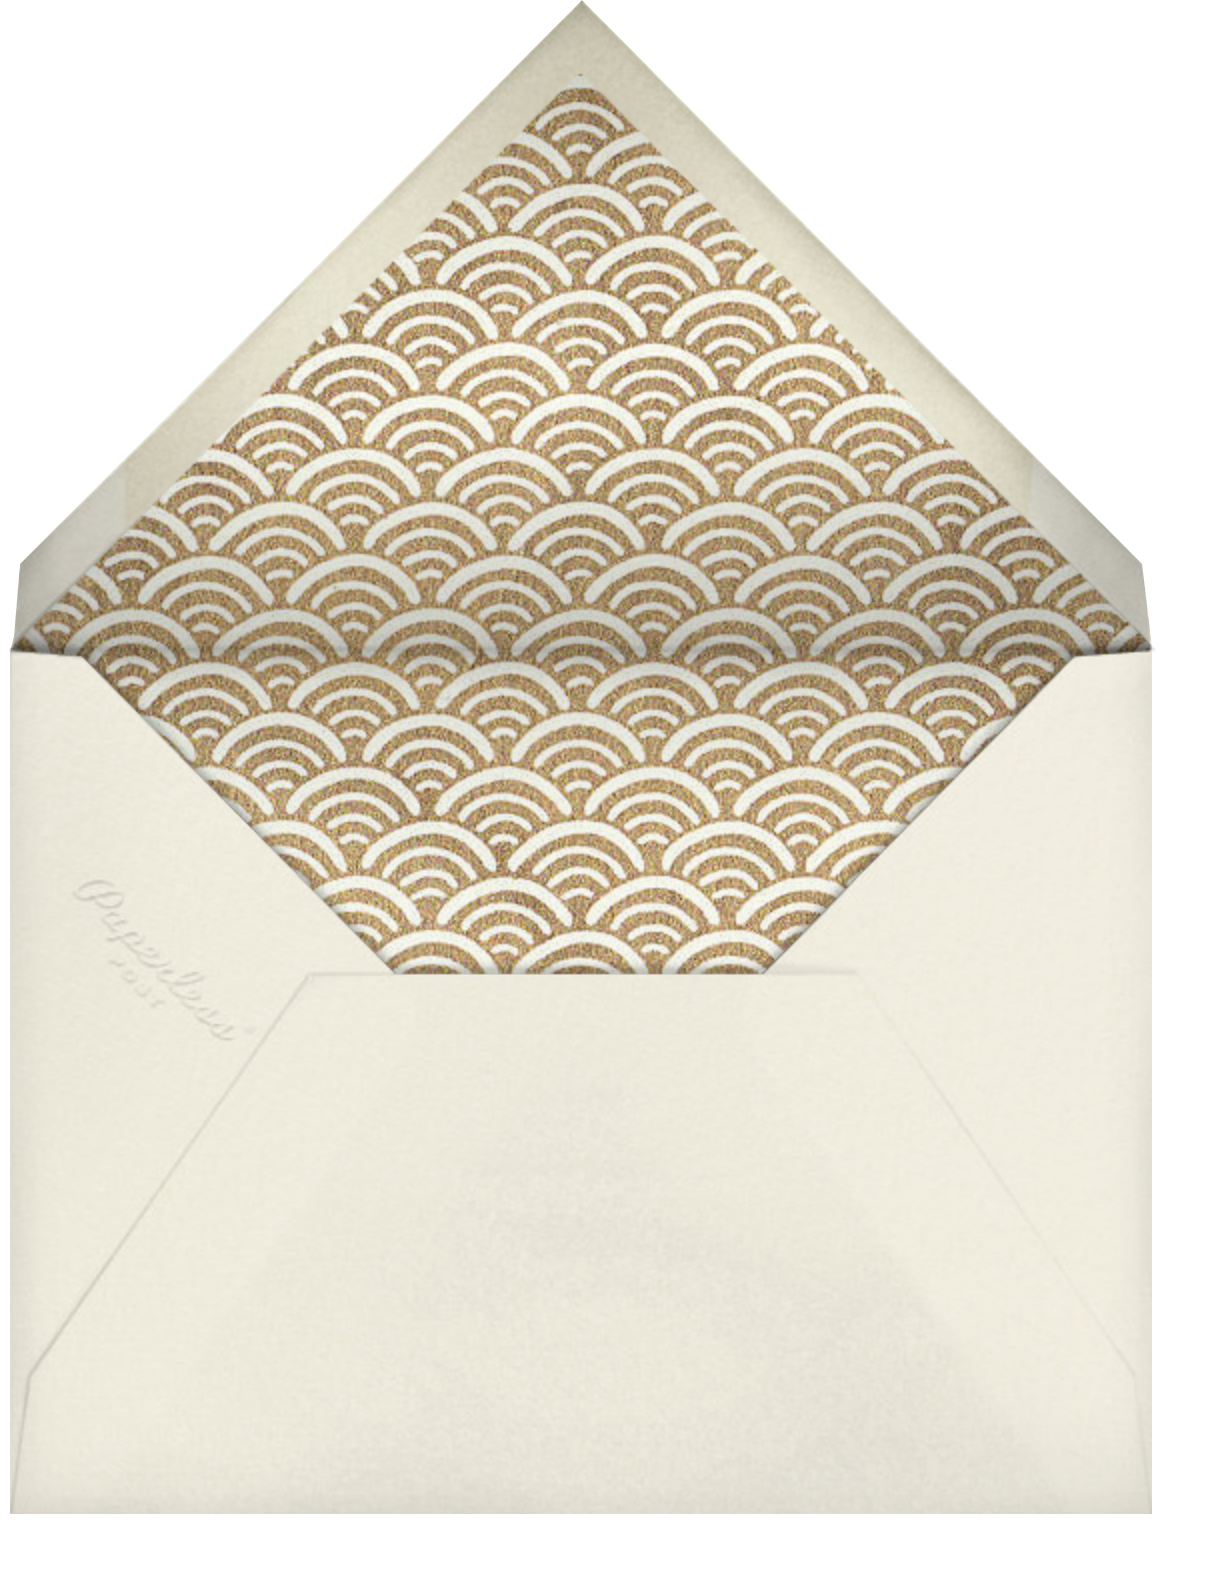 Bubbly Bath - Paperless Post - New Year's Eve - envelope back